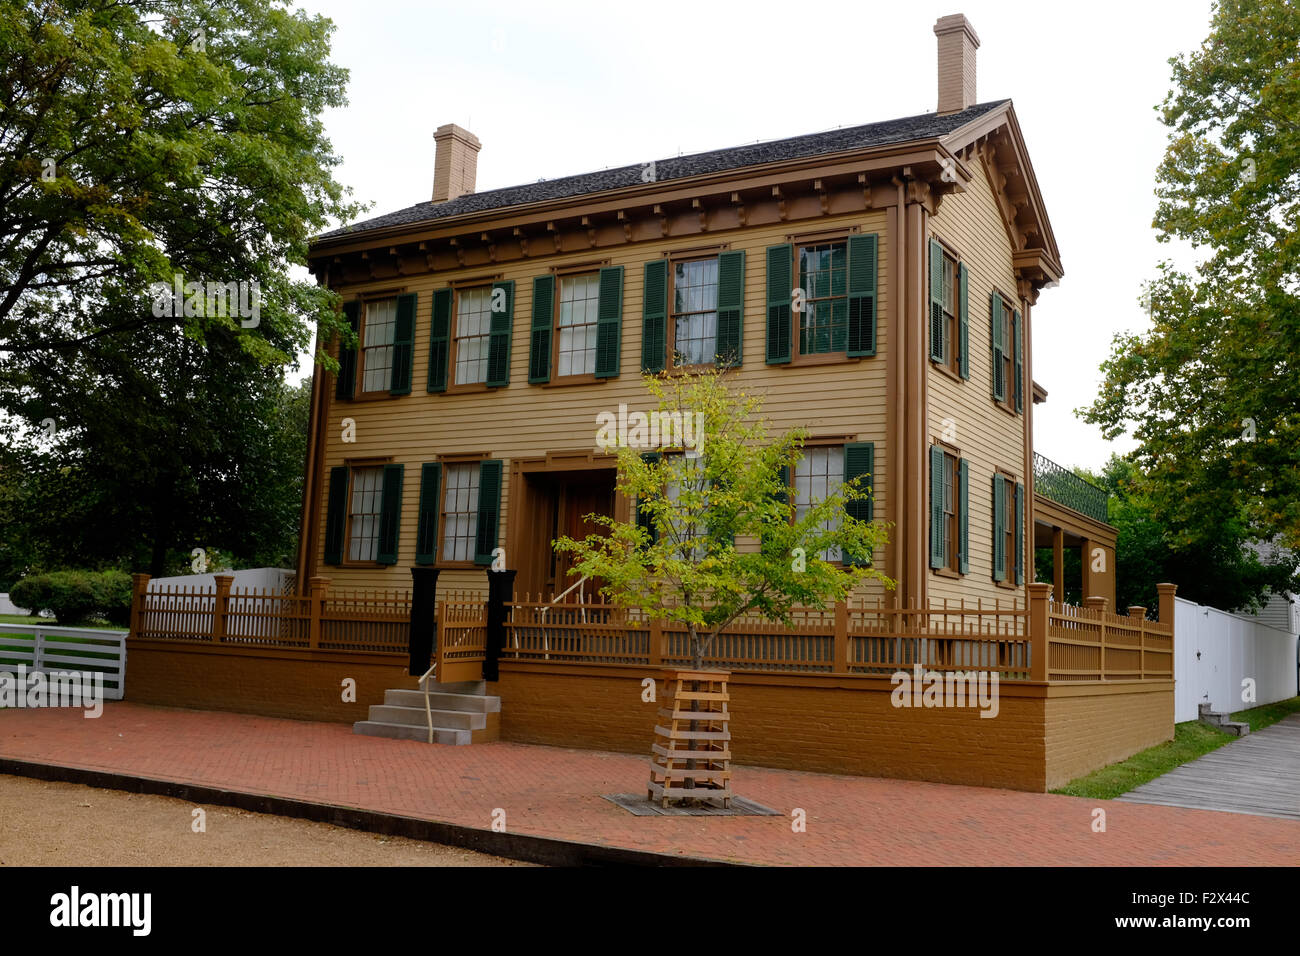 Abraham Lincoln's Home in Springfield, Illinois - Stock Image